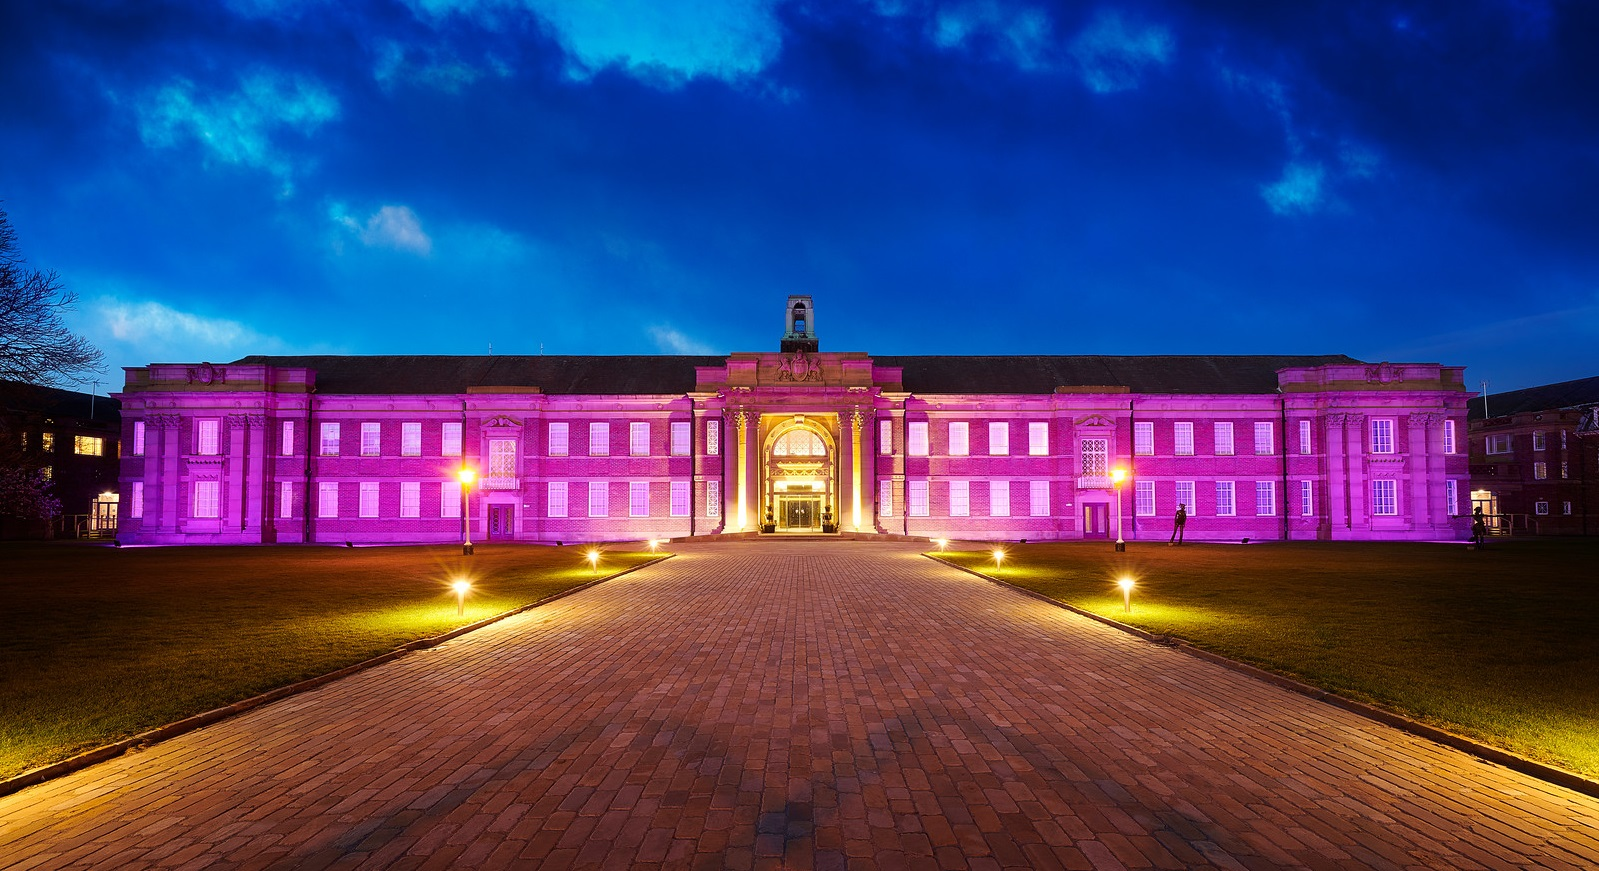 CASTLE study – Edge Hill University turns purple in honour of Purple Day 2019